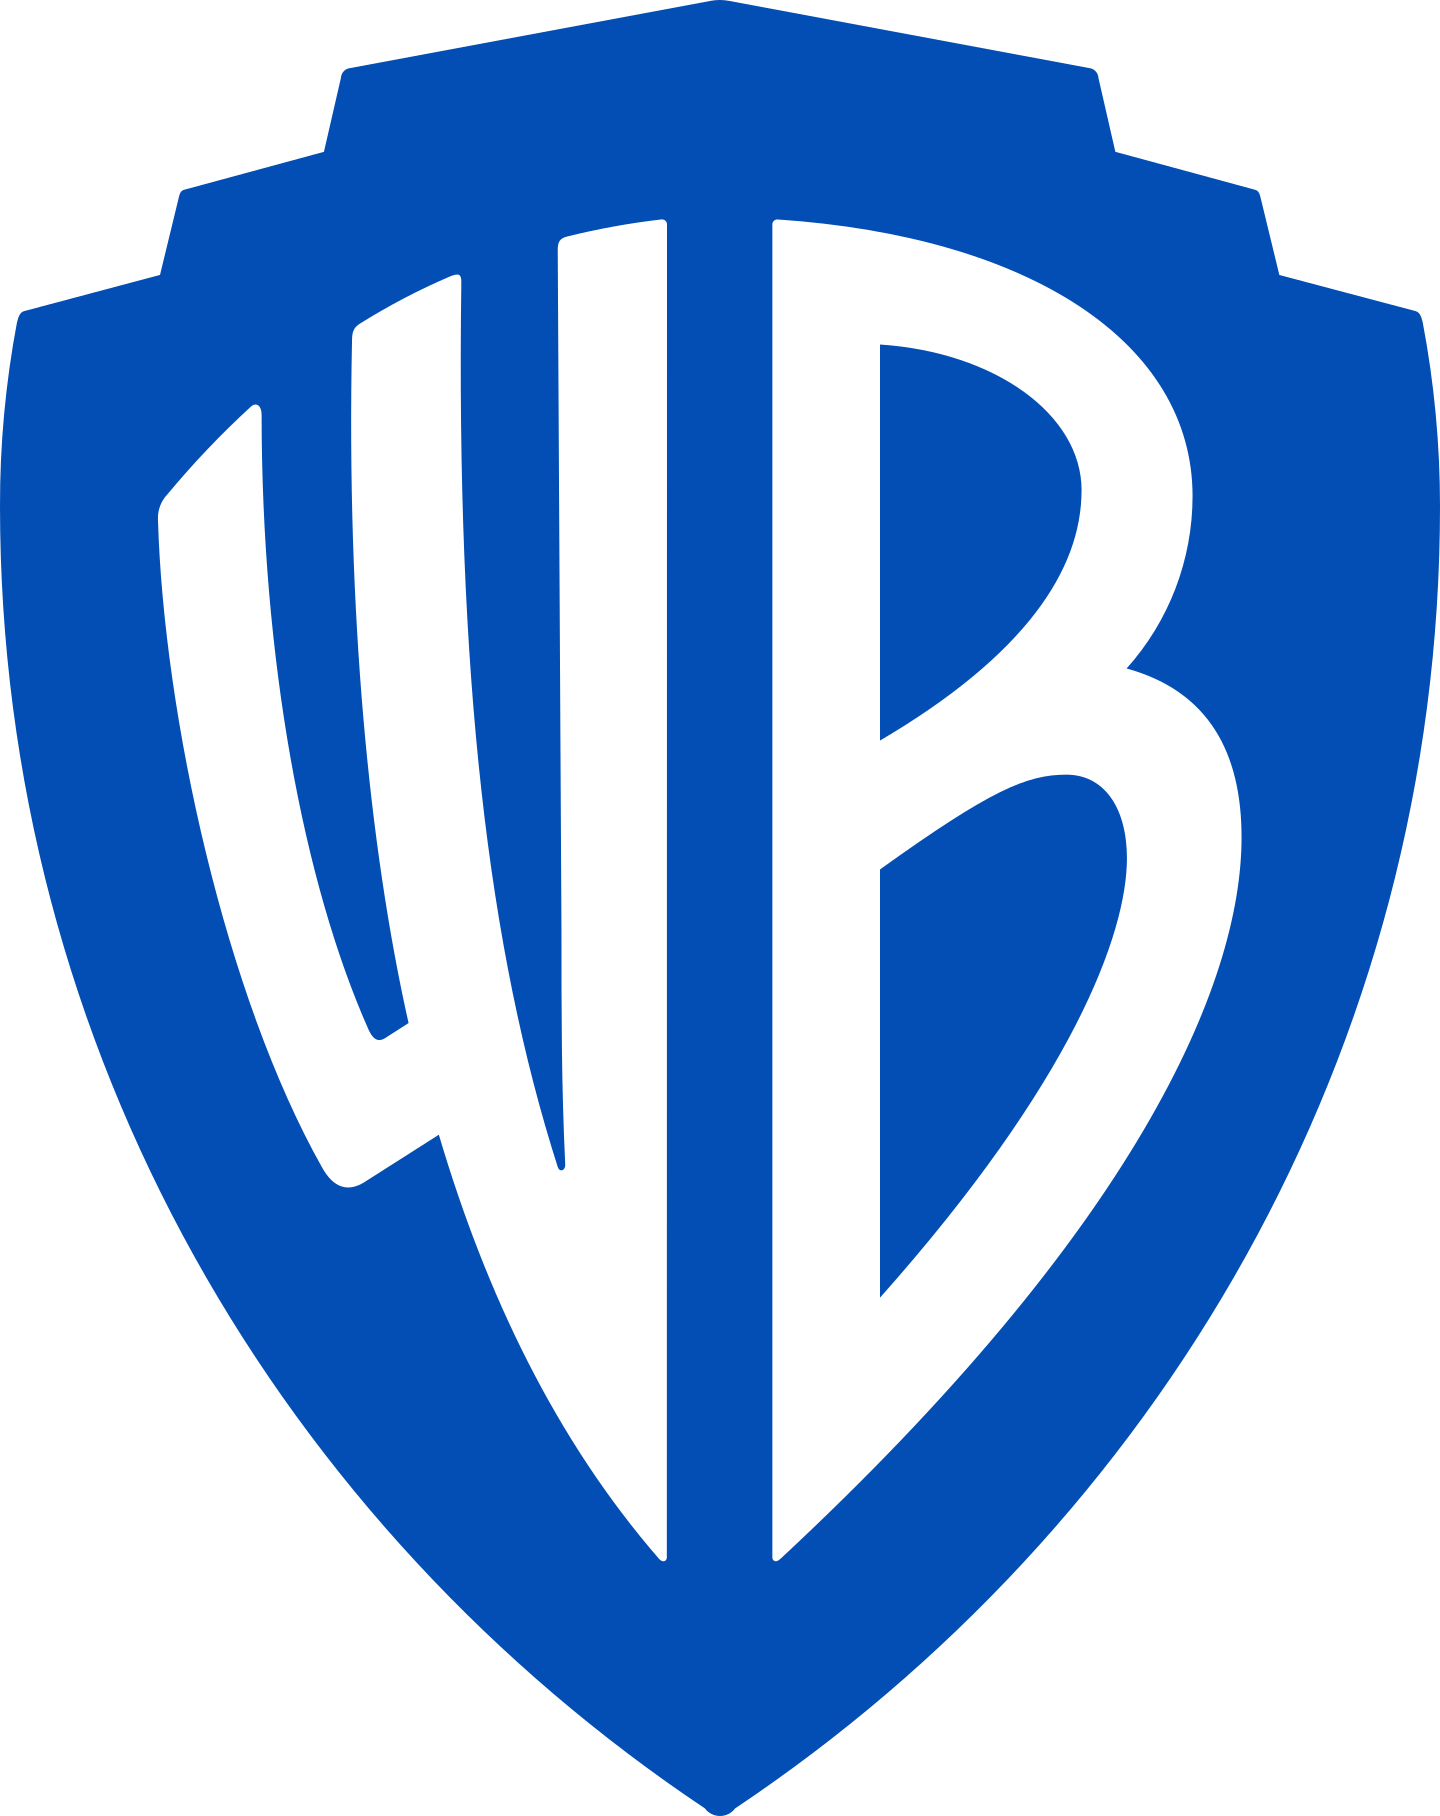 warner bros logo 2 1 - Warner Bros Logo